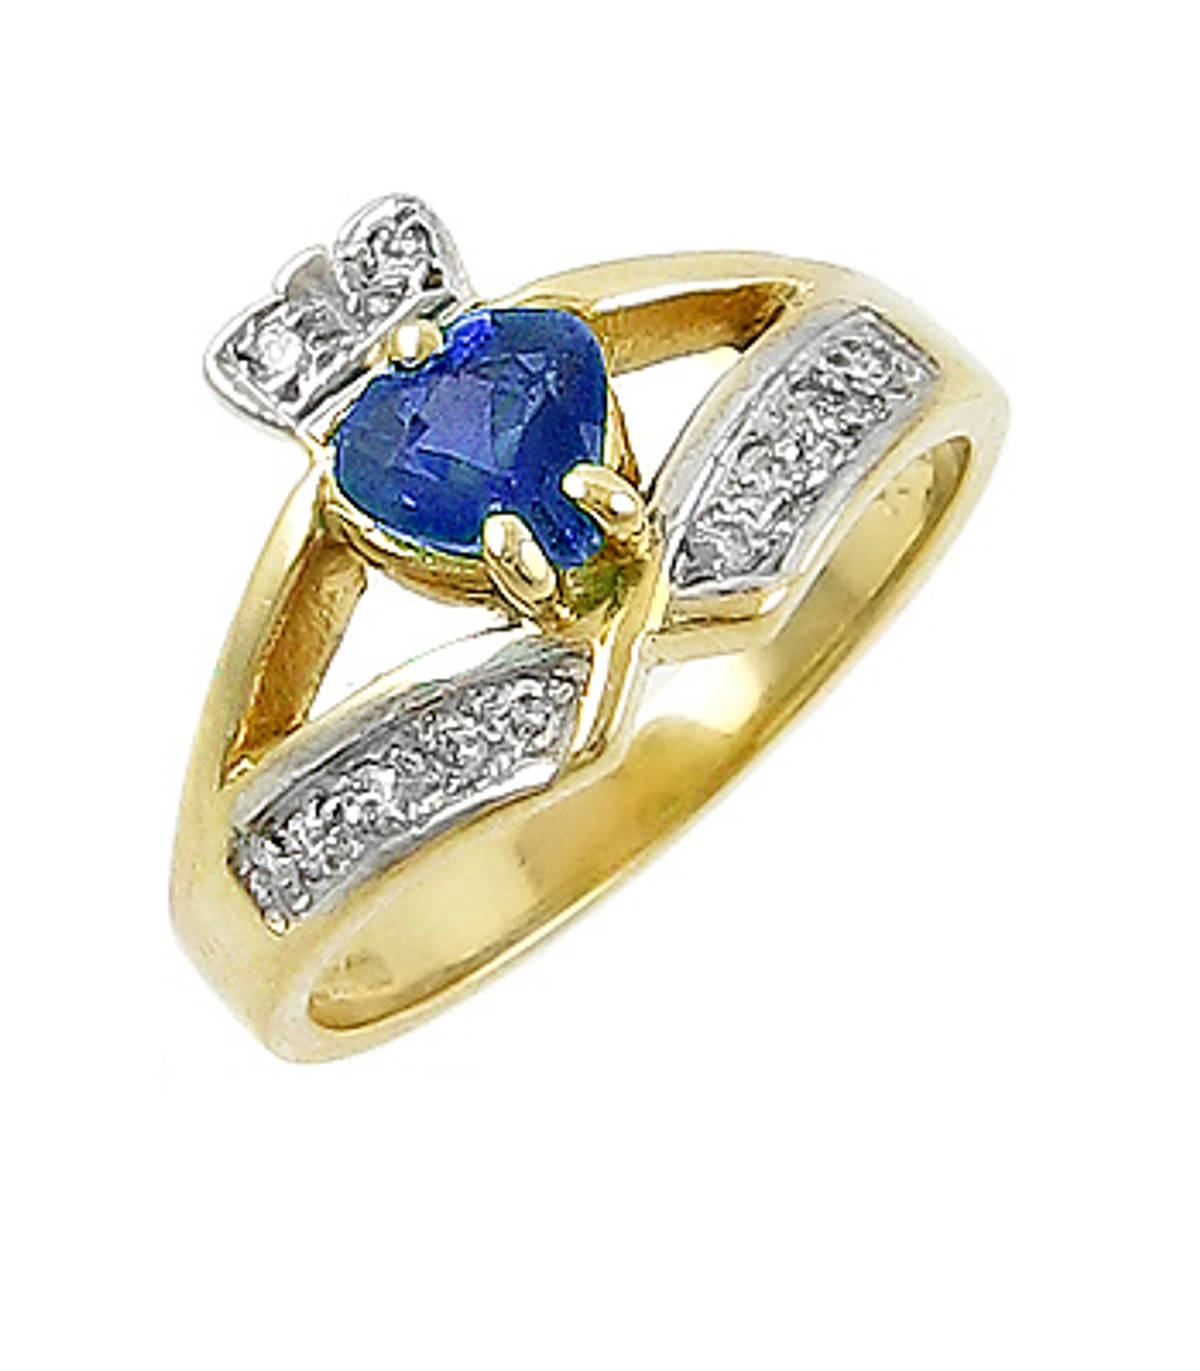 Irish made 14 carat yellow gold 0.55cts sapphire/0.12cts diamonds claddagh engagement ring